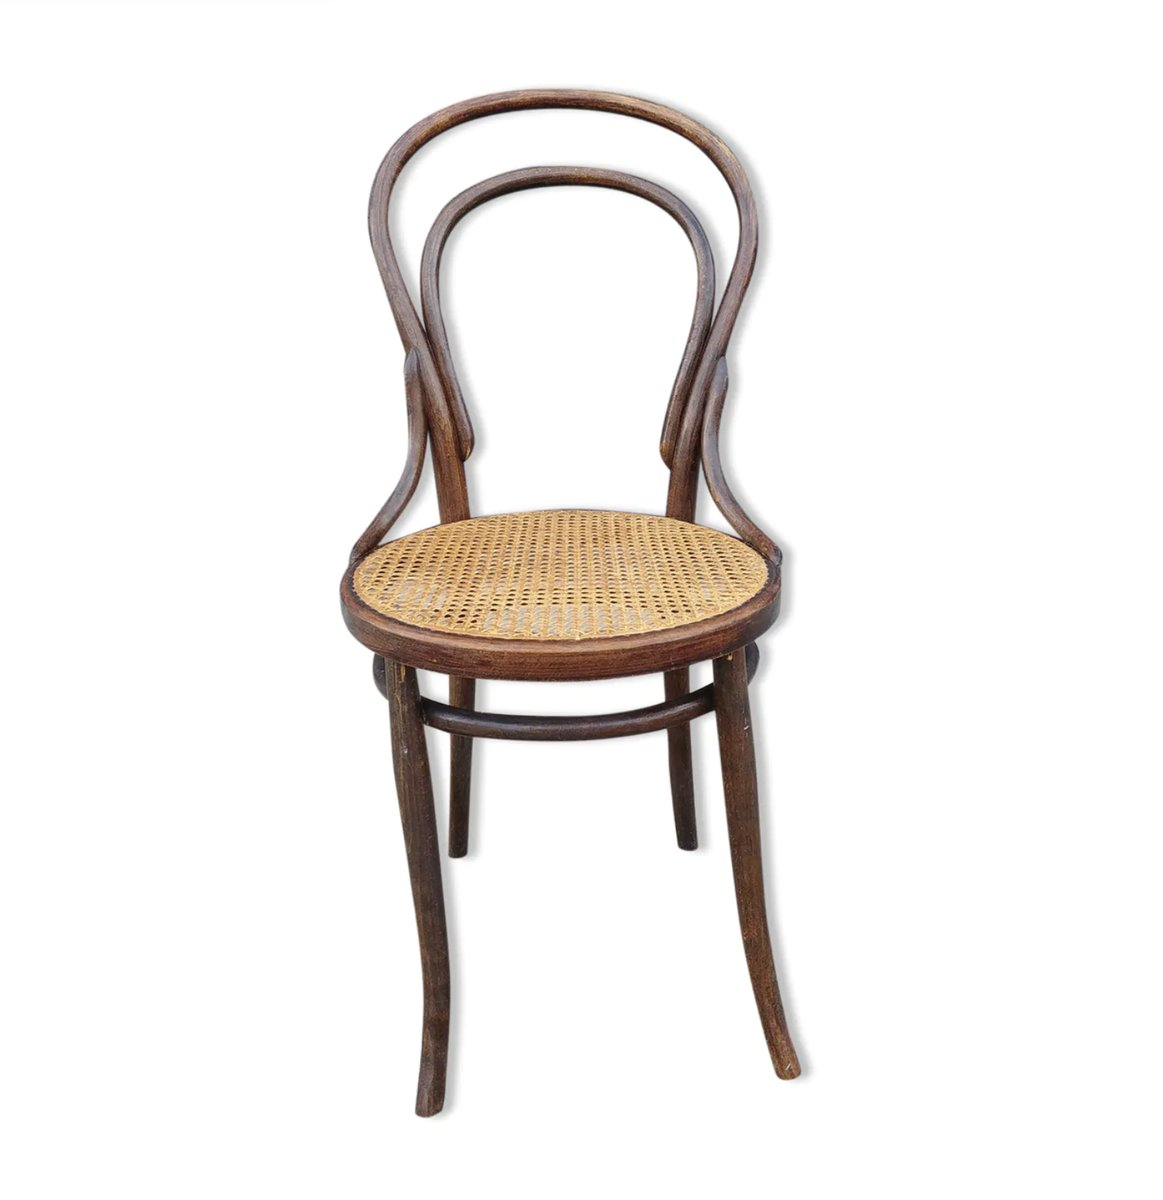 Antique Bistro Chair From Cambier For Sale At Pamono